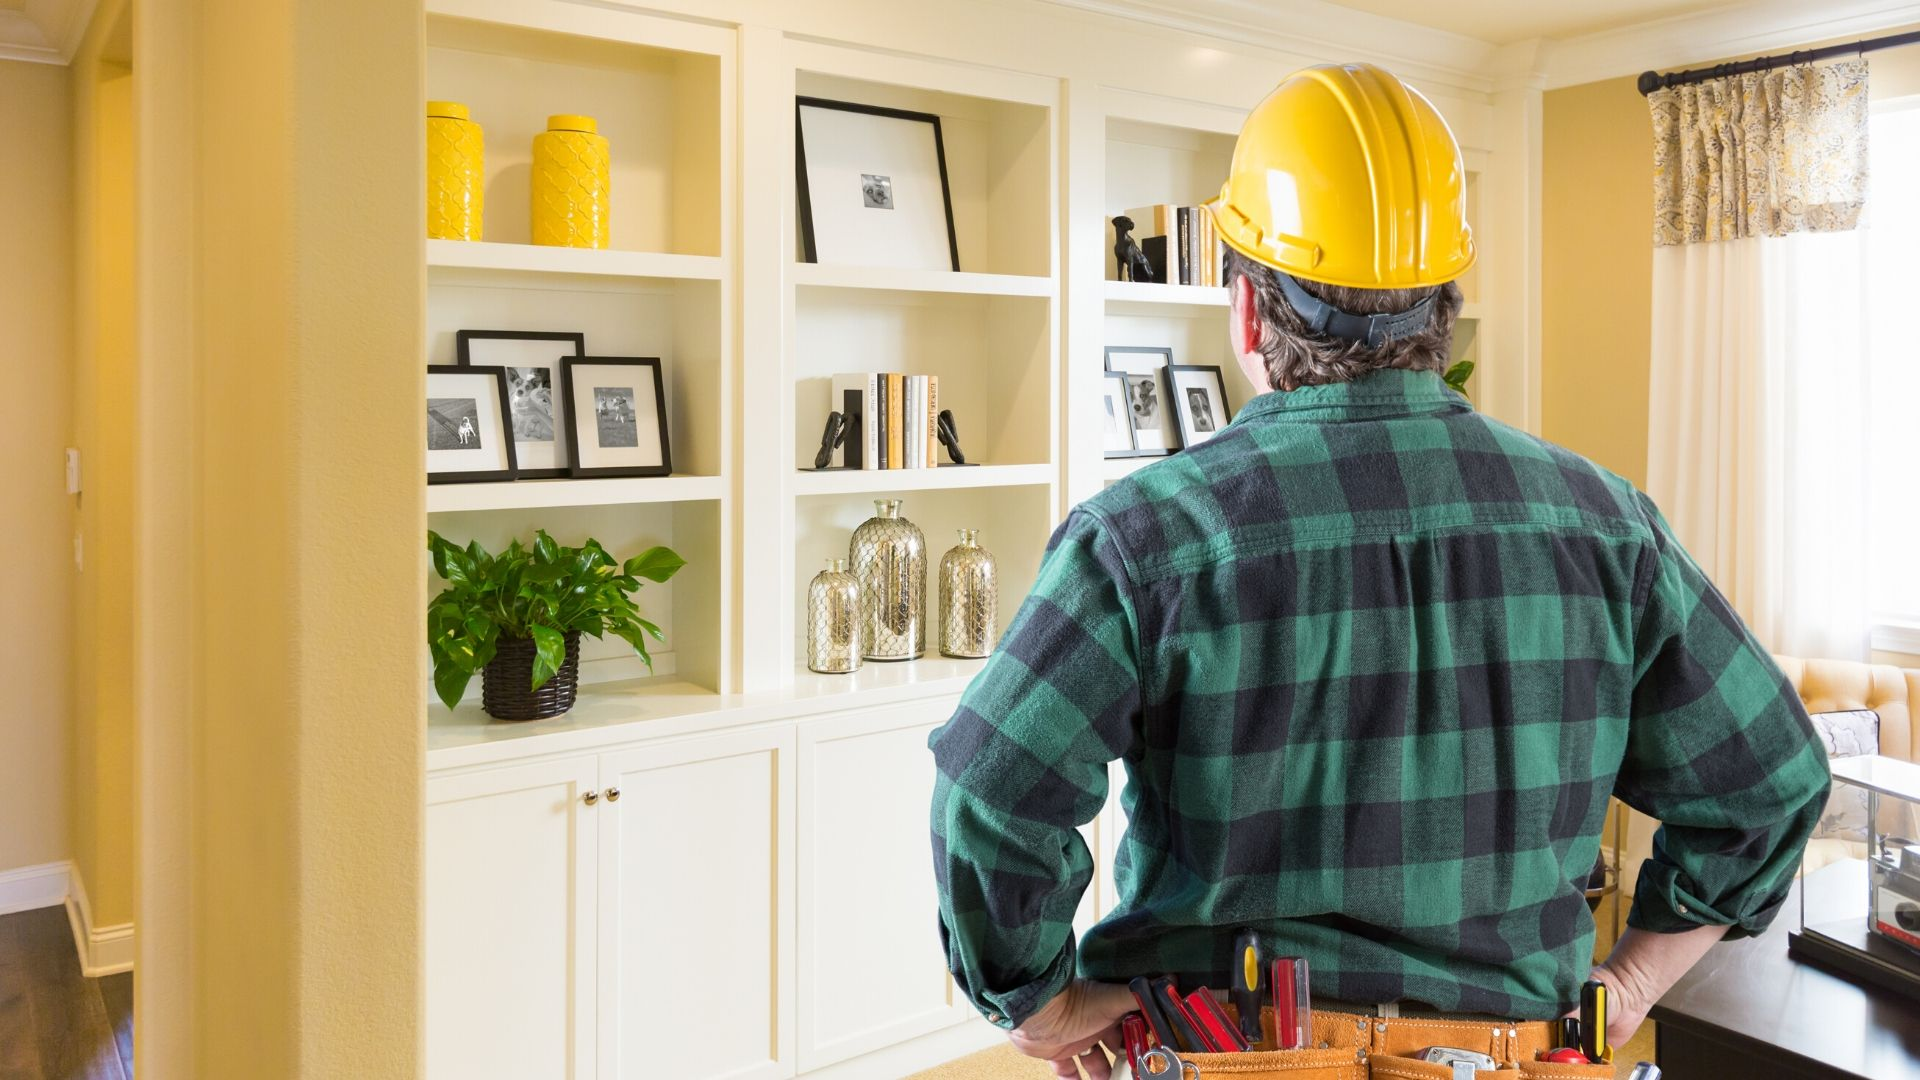 Our Services - Vittorio Remodeling & Construction